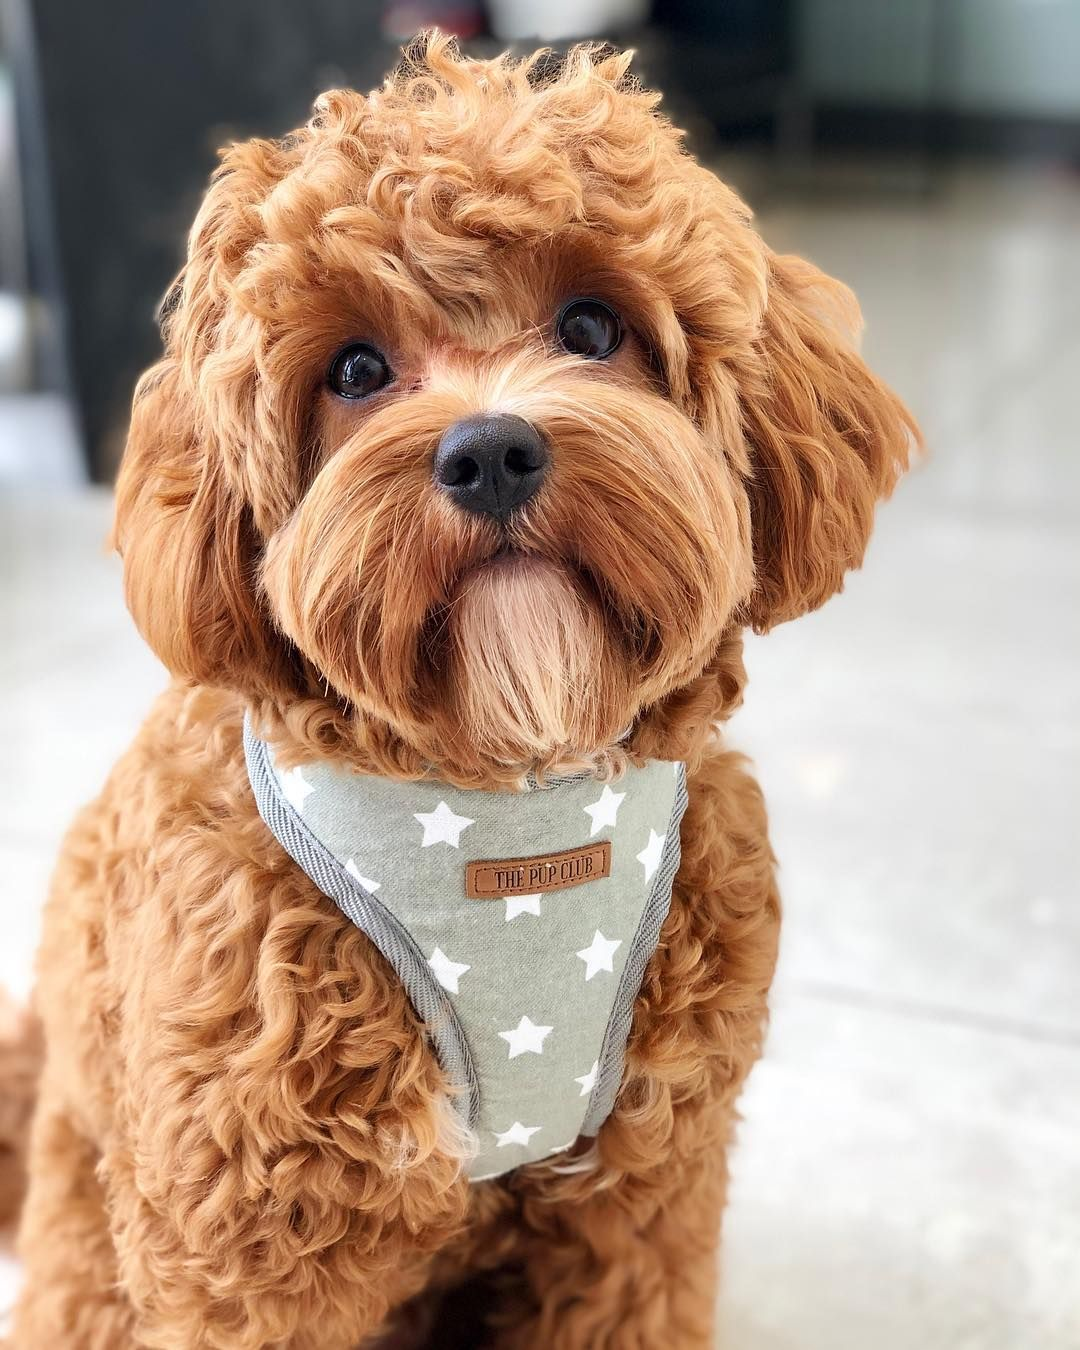 Everything You Need To Know About A Cavapoo Cavapoo Cavapoopuppies Cutepuppies Dogs Dogbeast Cavapoo Puppies Teddy Bear Dog Dog Haircuts